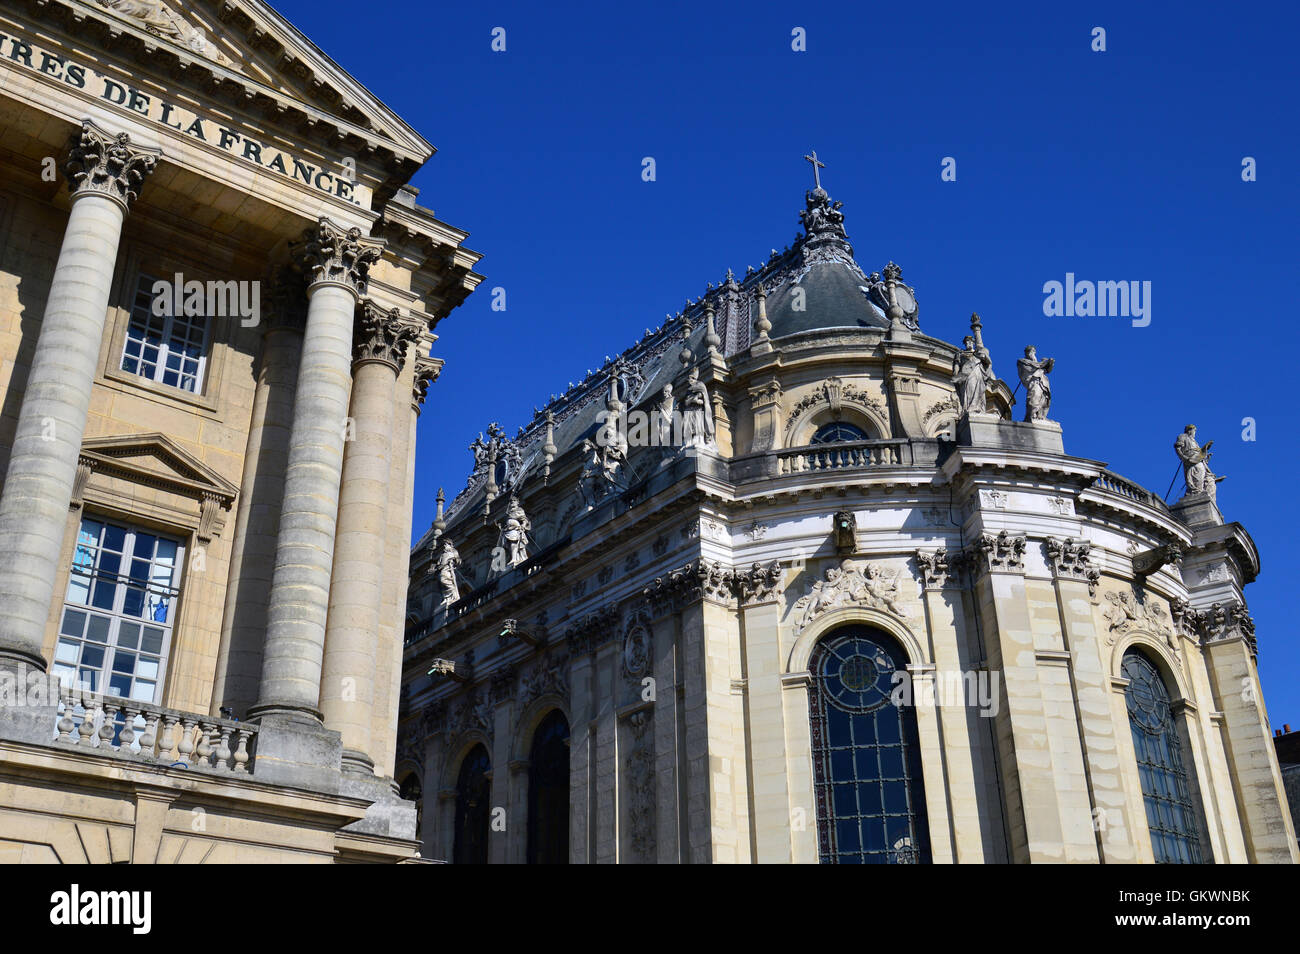 VERSAILLES, FRANCE - April 19, 2015: Ornamented buildings of the Royal Chapel in front of the Palace of Versailles, - Stock Image